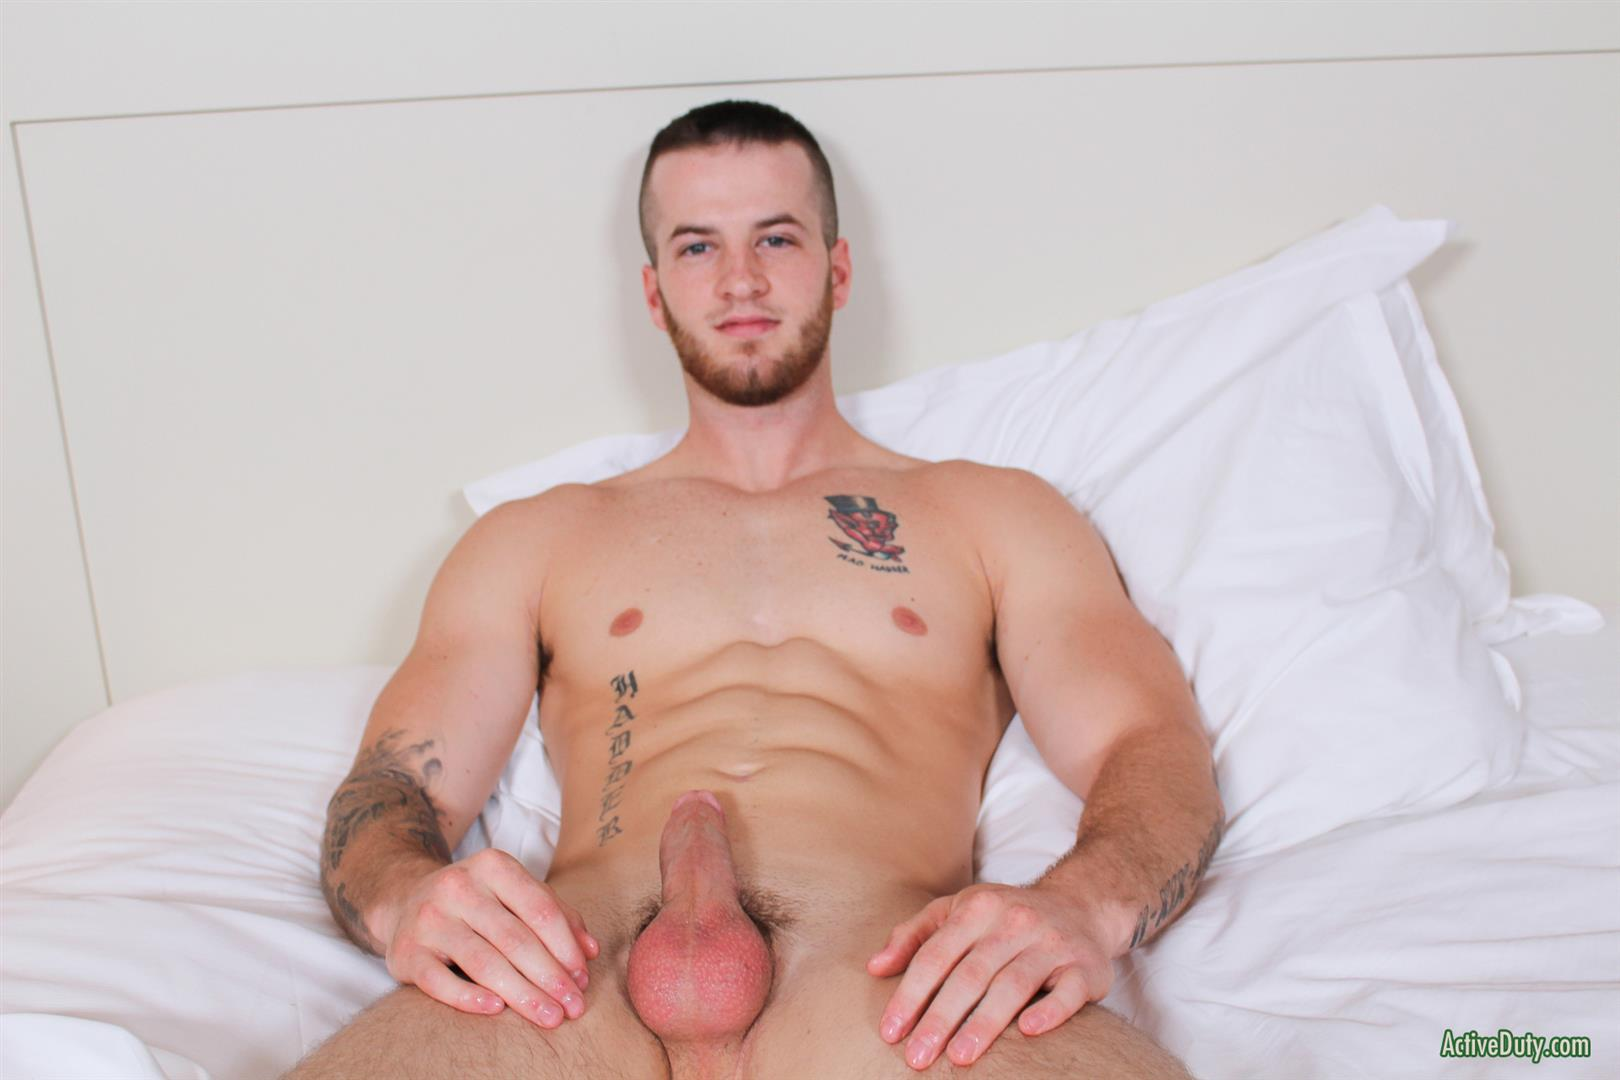 Active-Duty-Quentin-Muscular-Naked-Army-Soldier-Masturbating-Big-Cock-Amateur-Gay-Porn-12 Straight Army Private Stokes His Big Cock On Video For The First Time